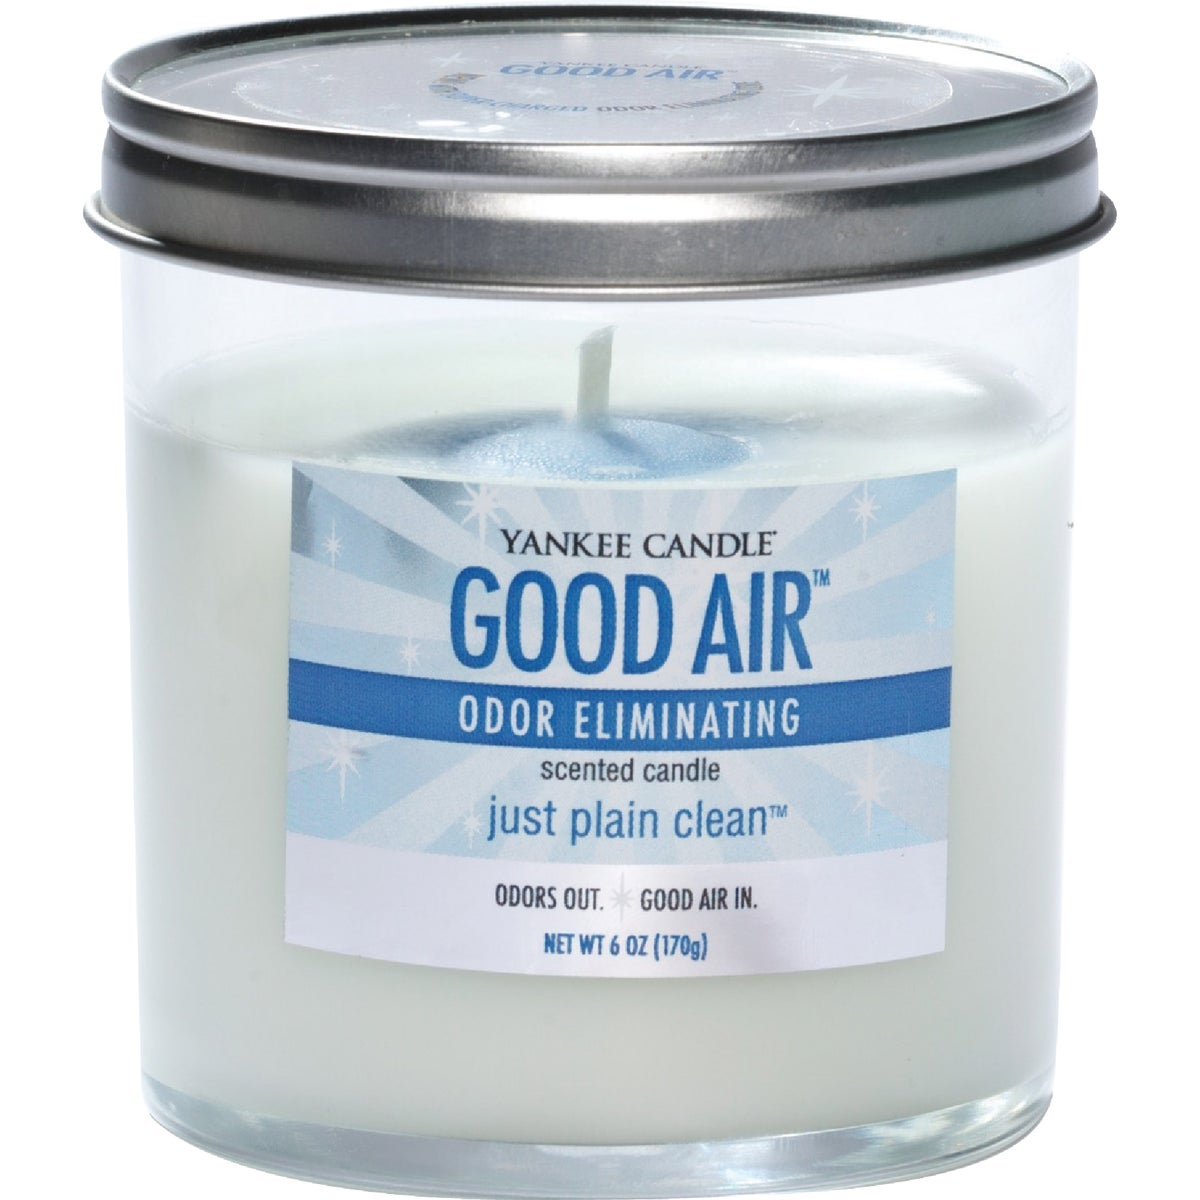 6OZ GOOD AIR CANDLE - 1155856 by Yankee Candle Co